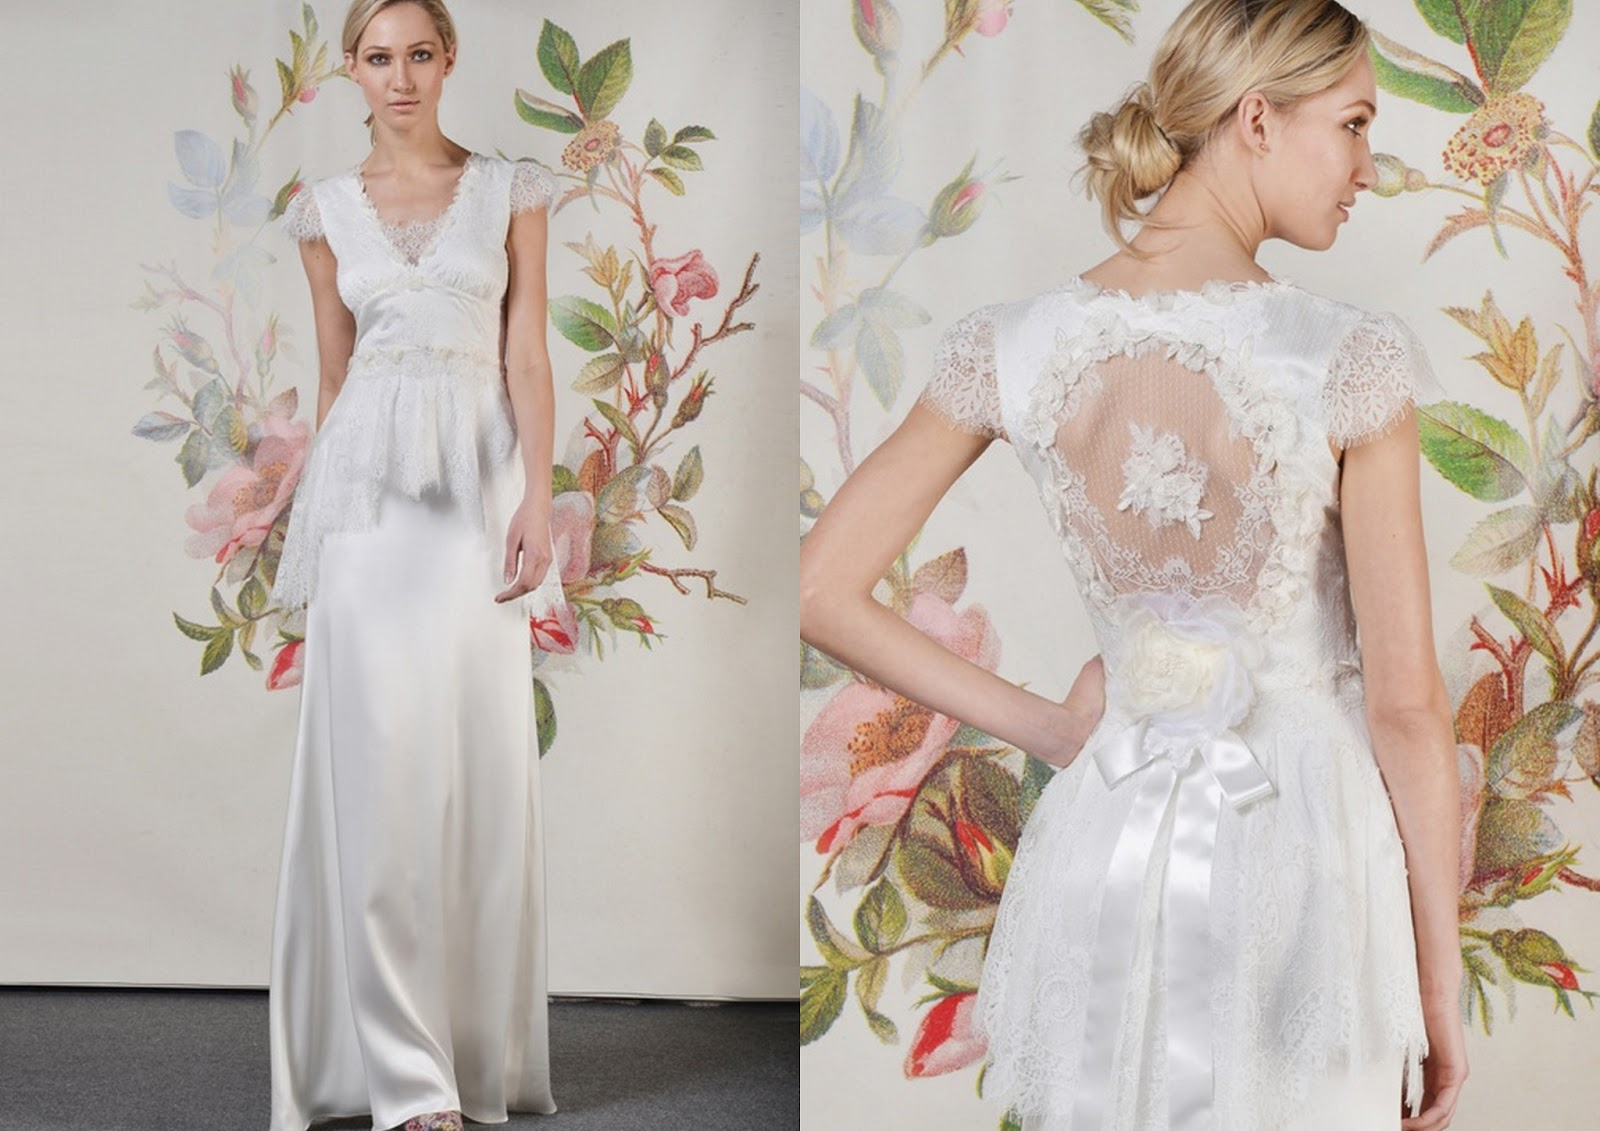 Enchanting Events Blog: Spring 2014 Wedding Gown Trends